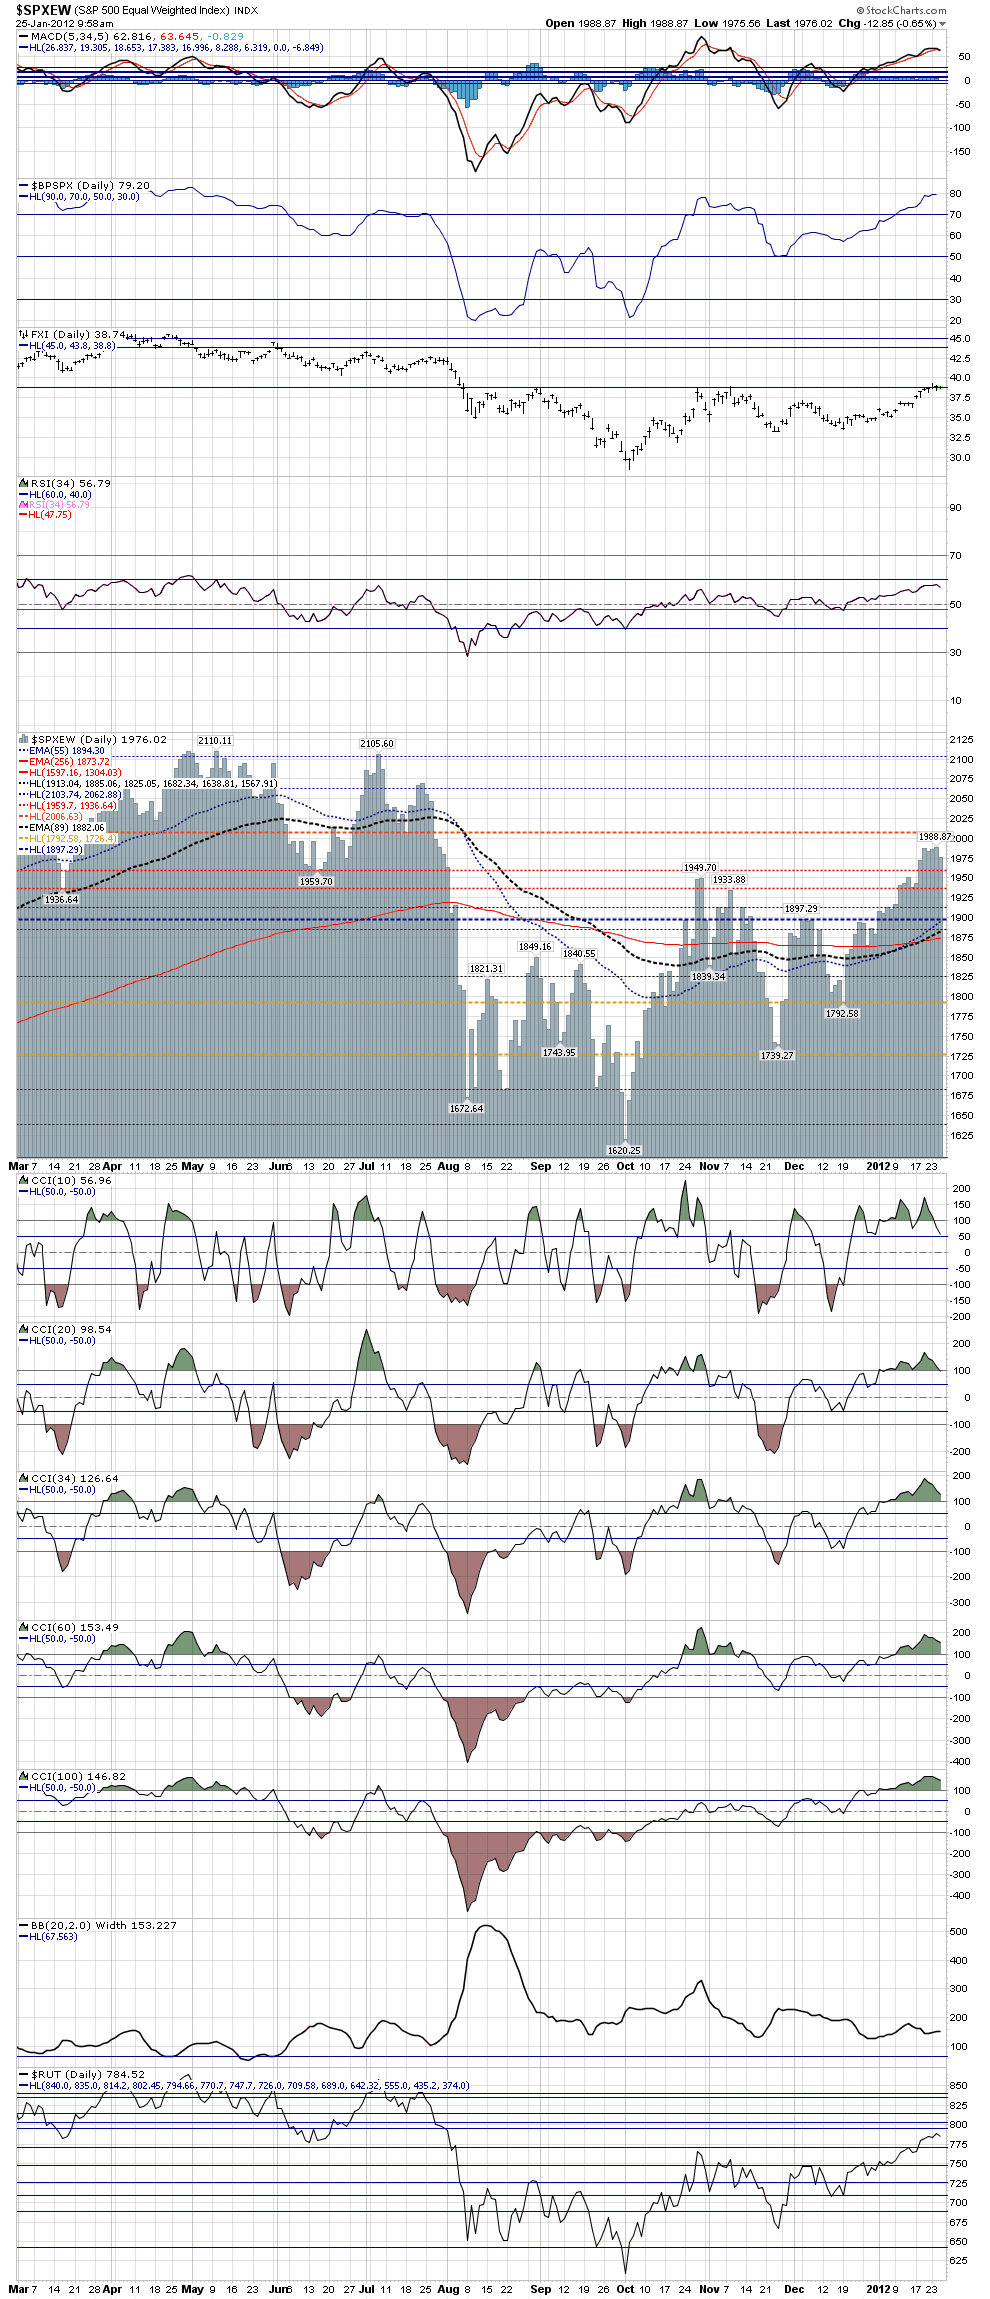 Name: SPX_Equal_Weighted_Index_-_daily_closes,_9.59_am_January_25,_2012.png, Views: 132, Size: 115.31 KB